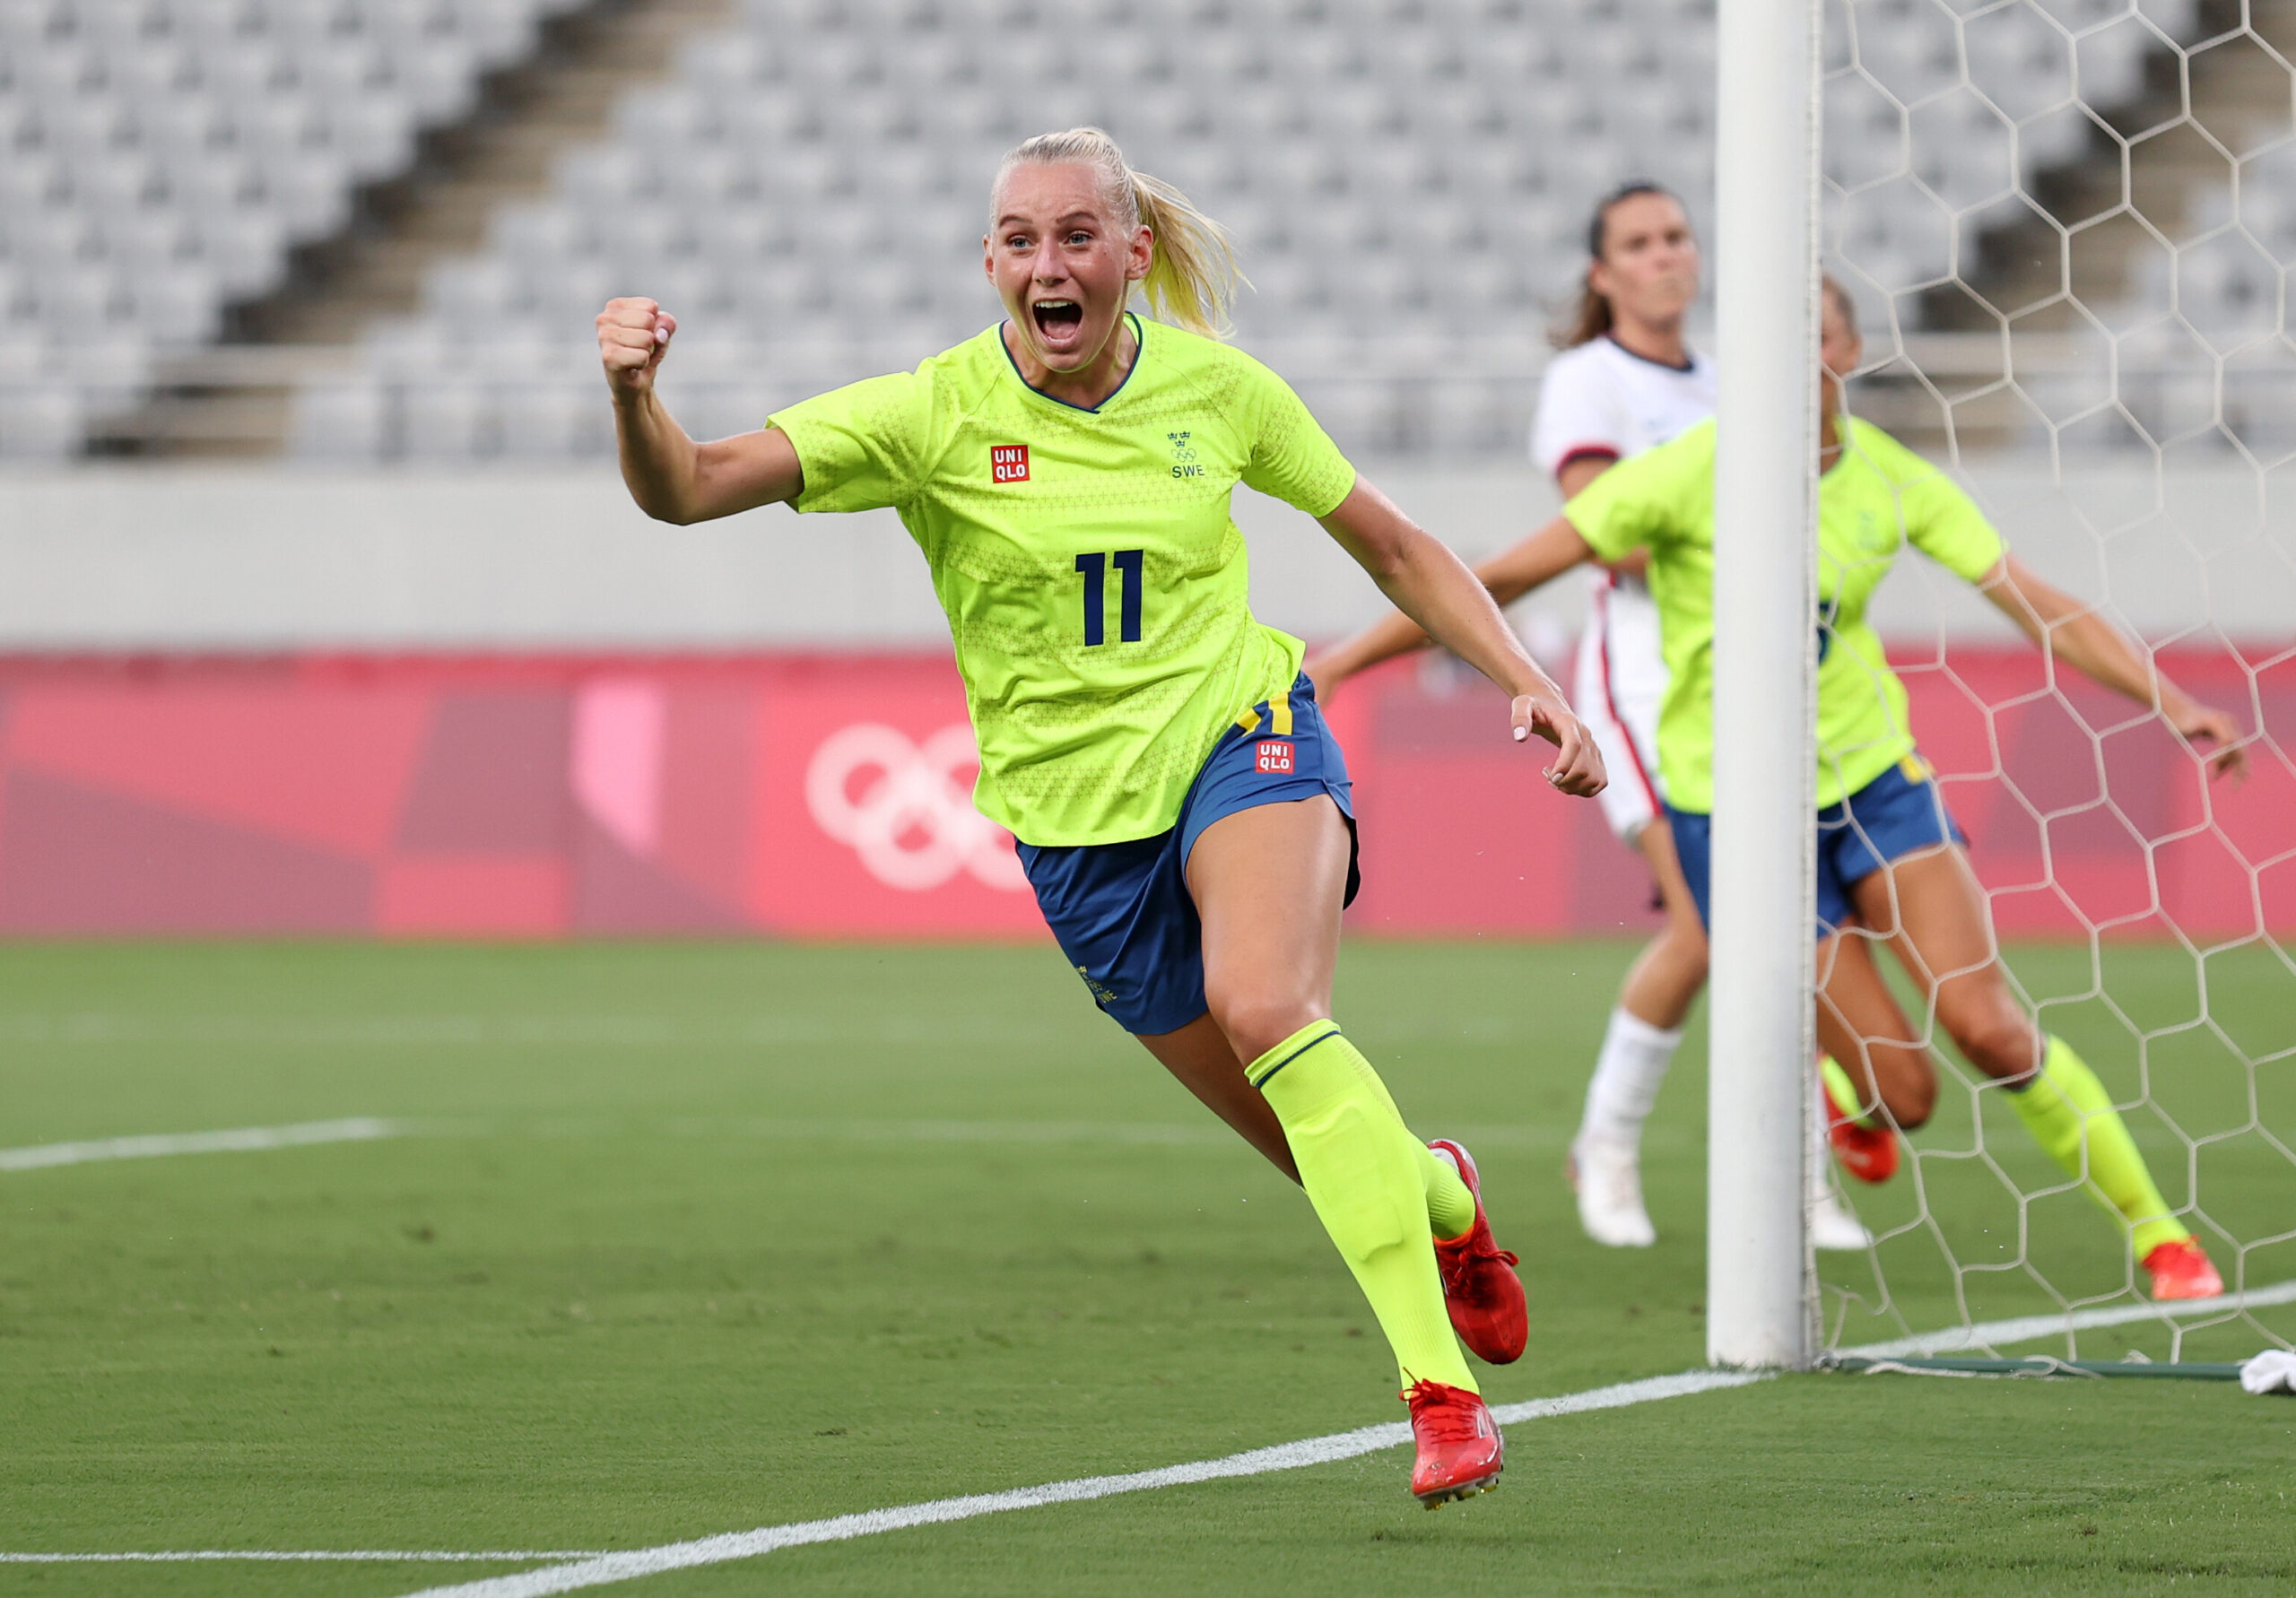 <i>Dan Mullan/Getty Images AsiaPac/Getty Images</i><br/>Stina Blackstenius got her Olympics off to a dream start with a brace.